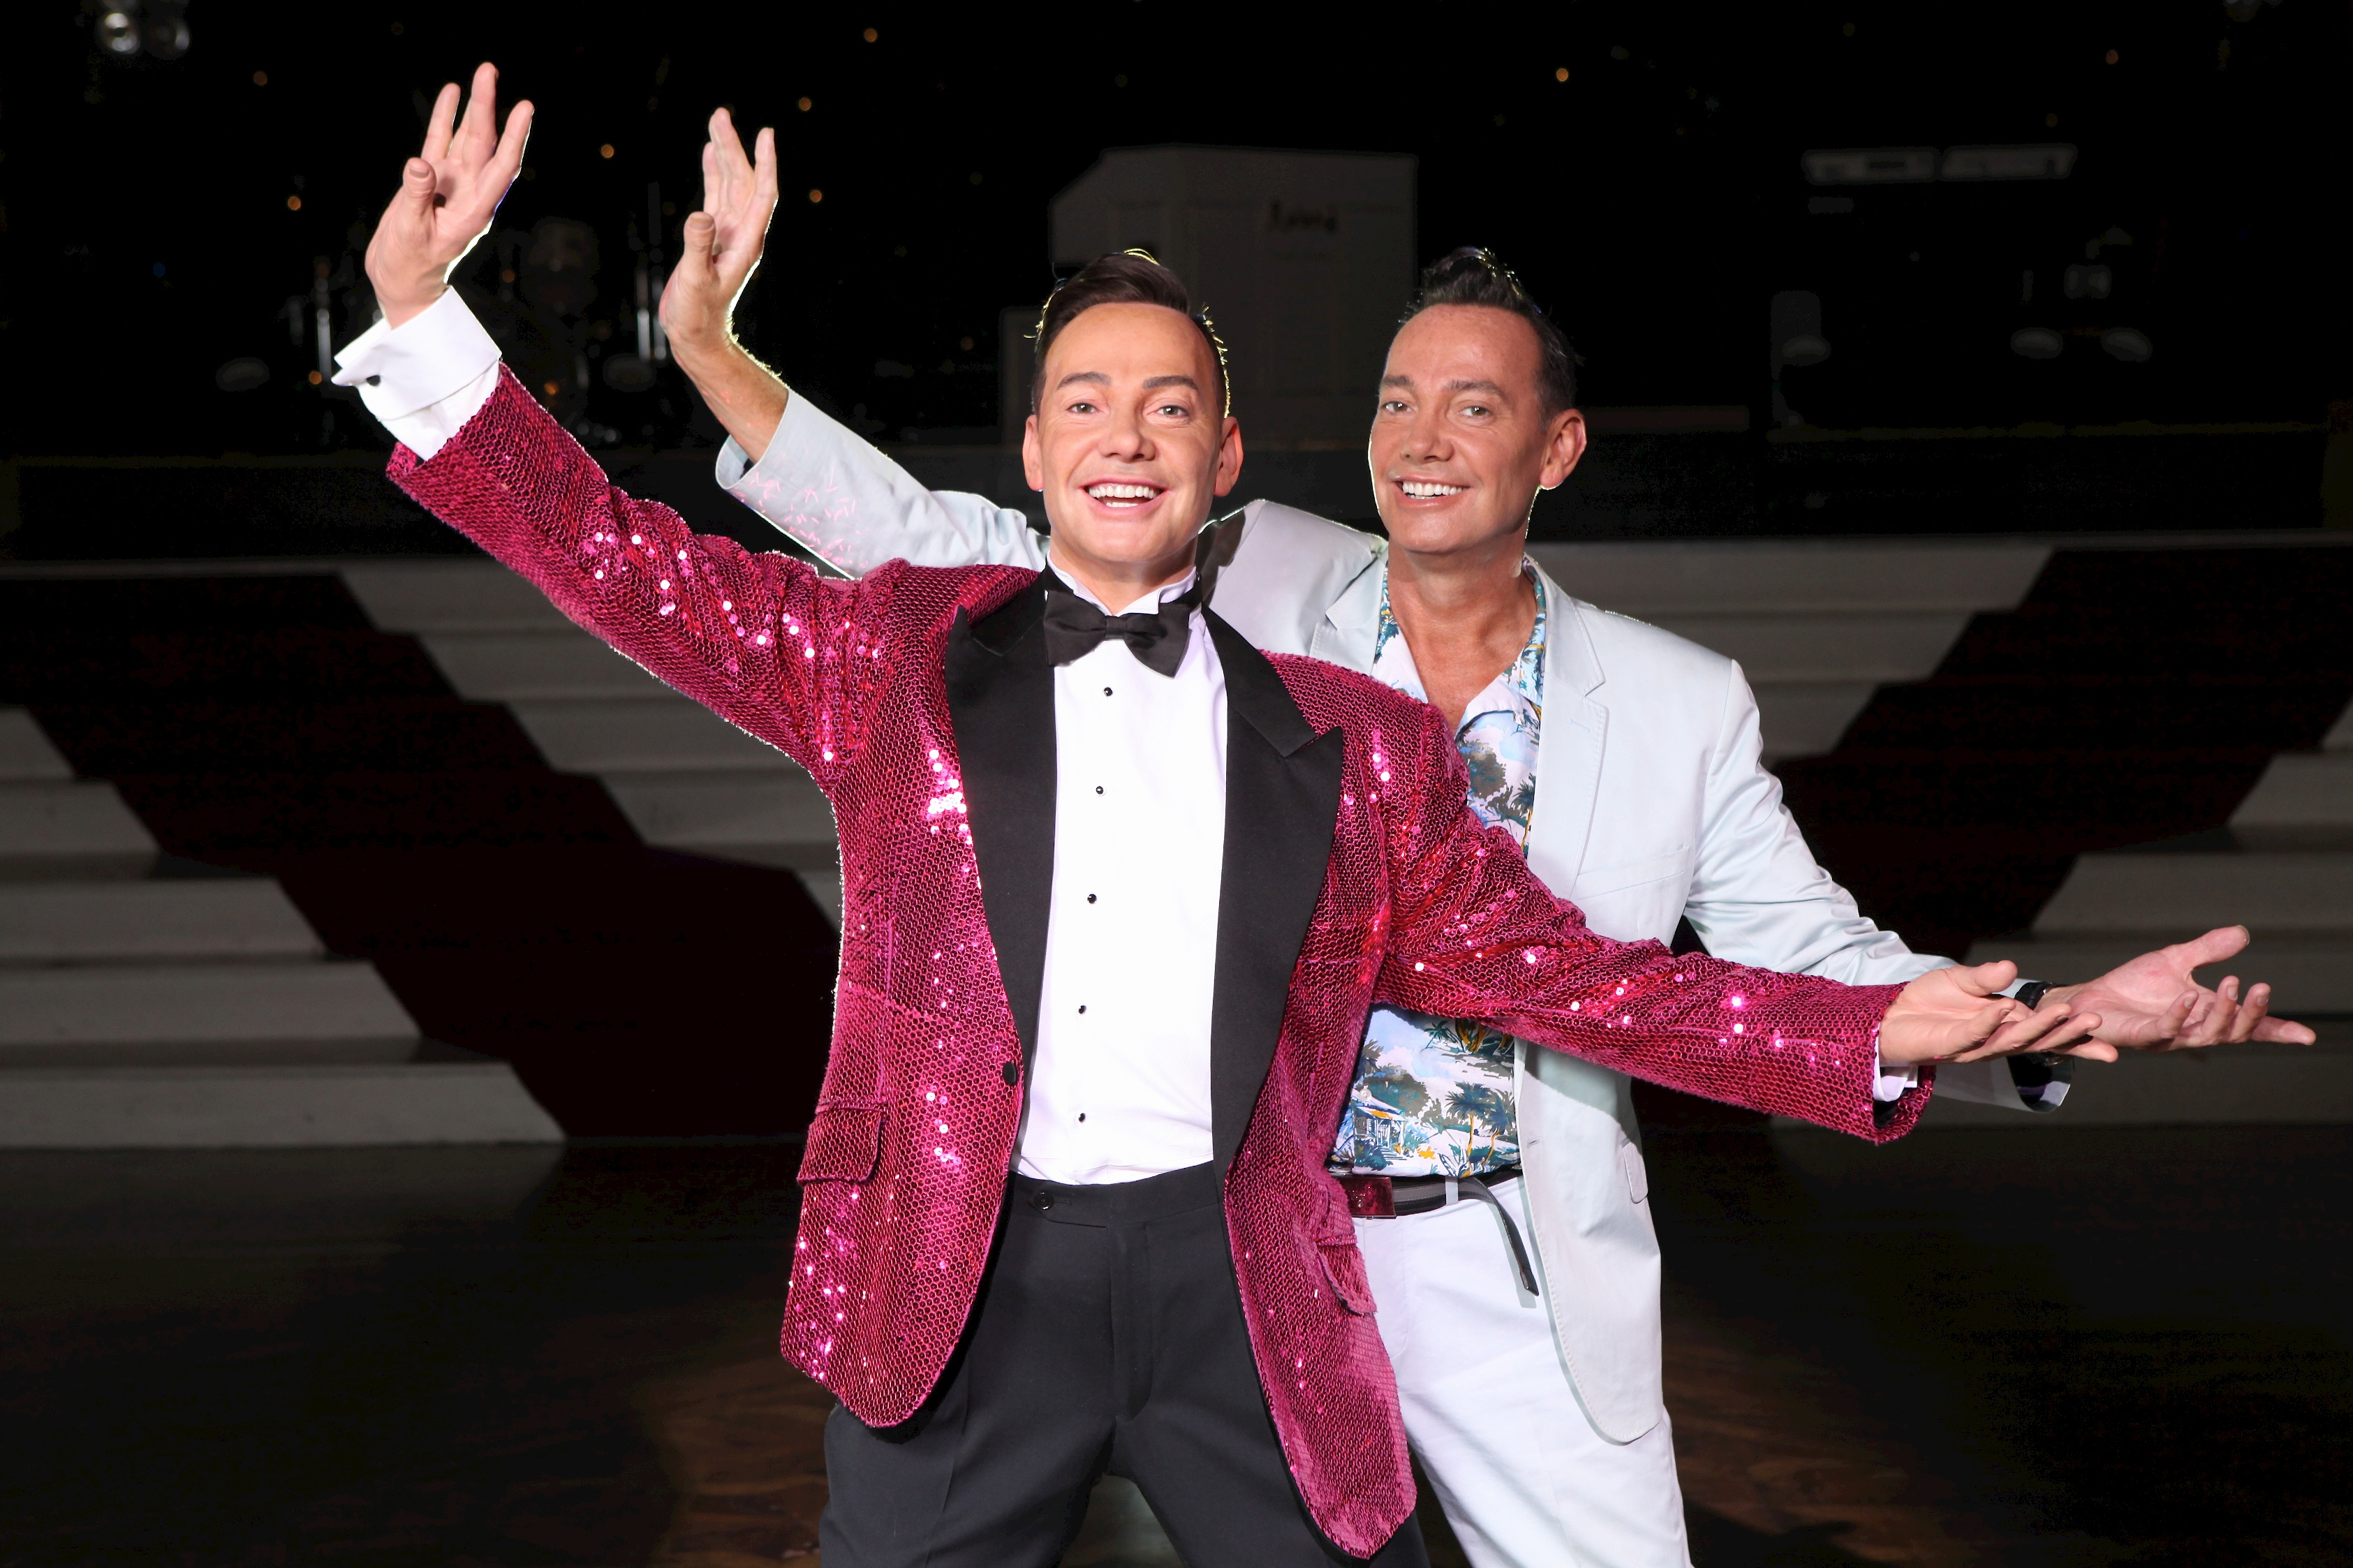 Craig Revel strikes the same dance pose alongside his wax figure at Madame Tussauds Blackpool